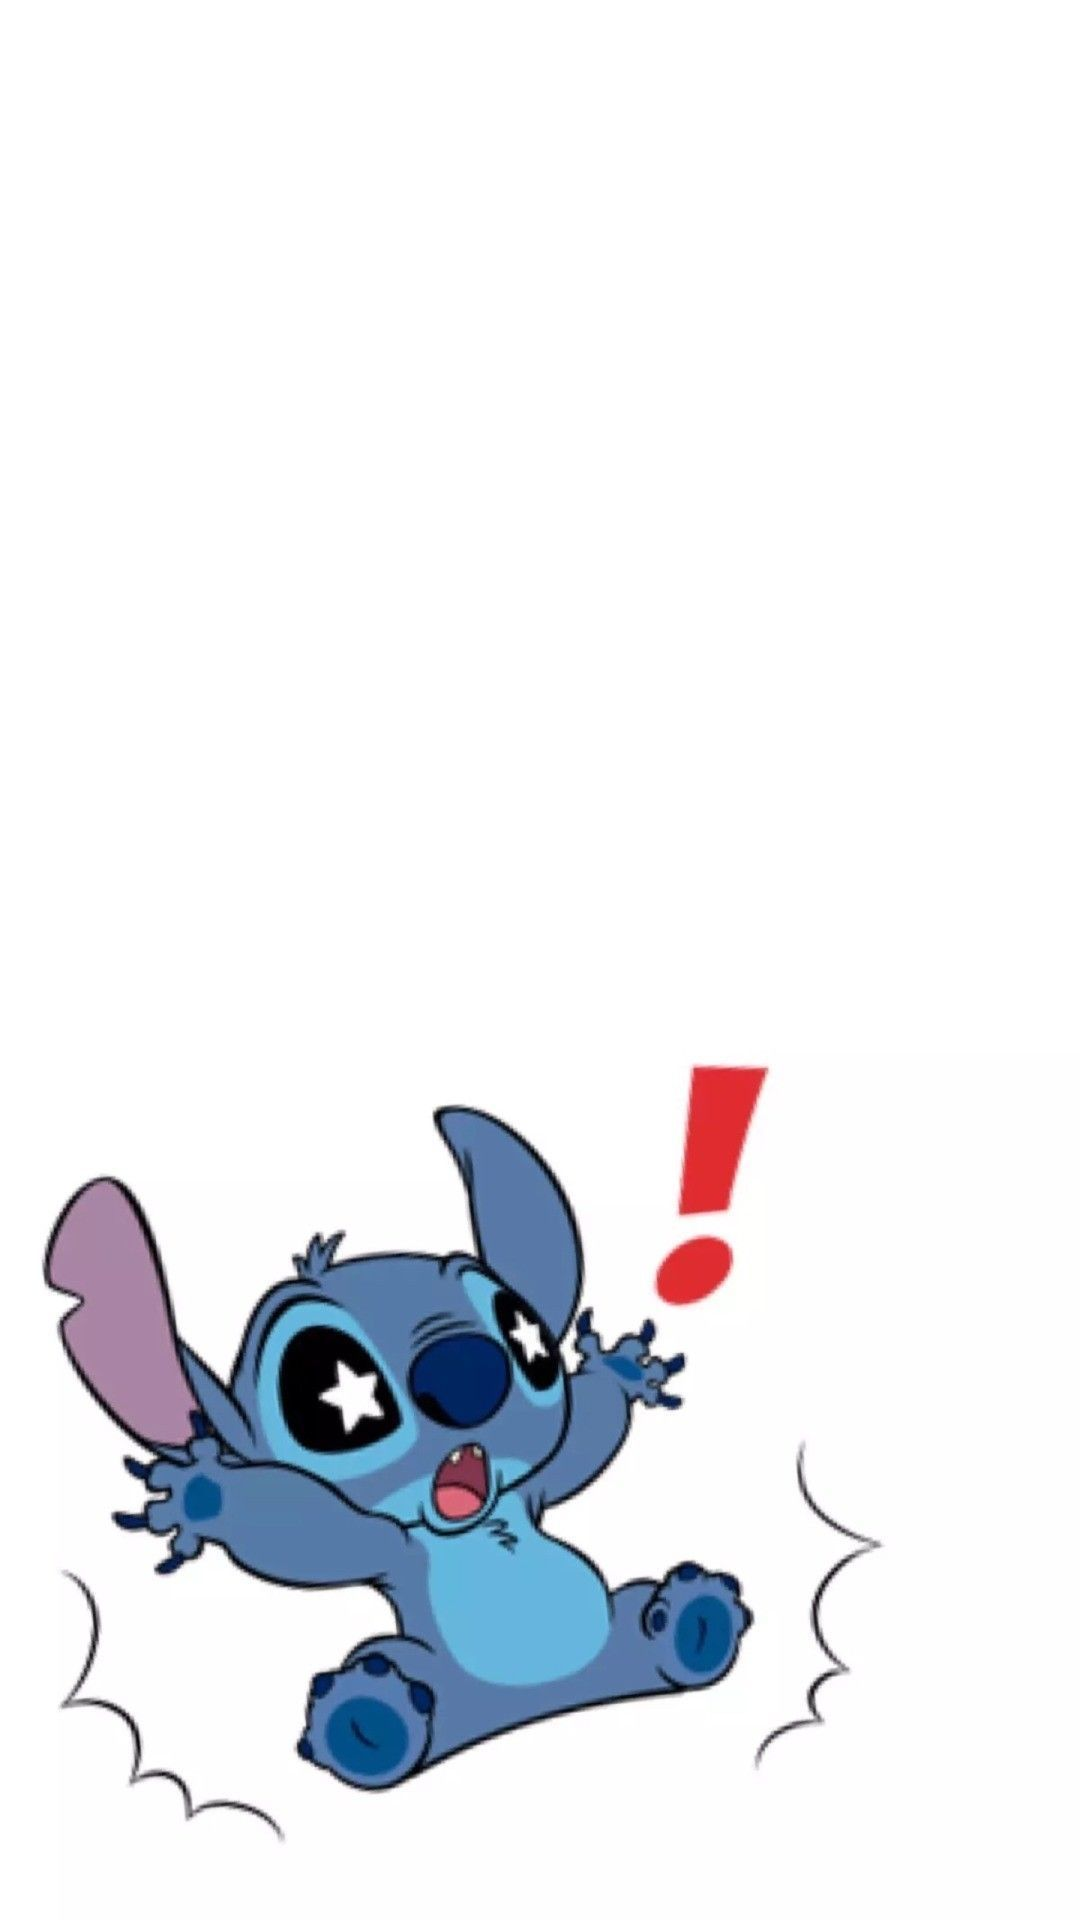 20 Cute Wallpaper Iphone Disney Stitch For Your Iphone Wallpaper Iphone Disney Wallpaper Iphone Cute Stitch Disney